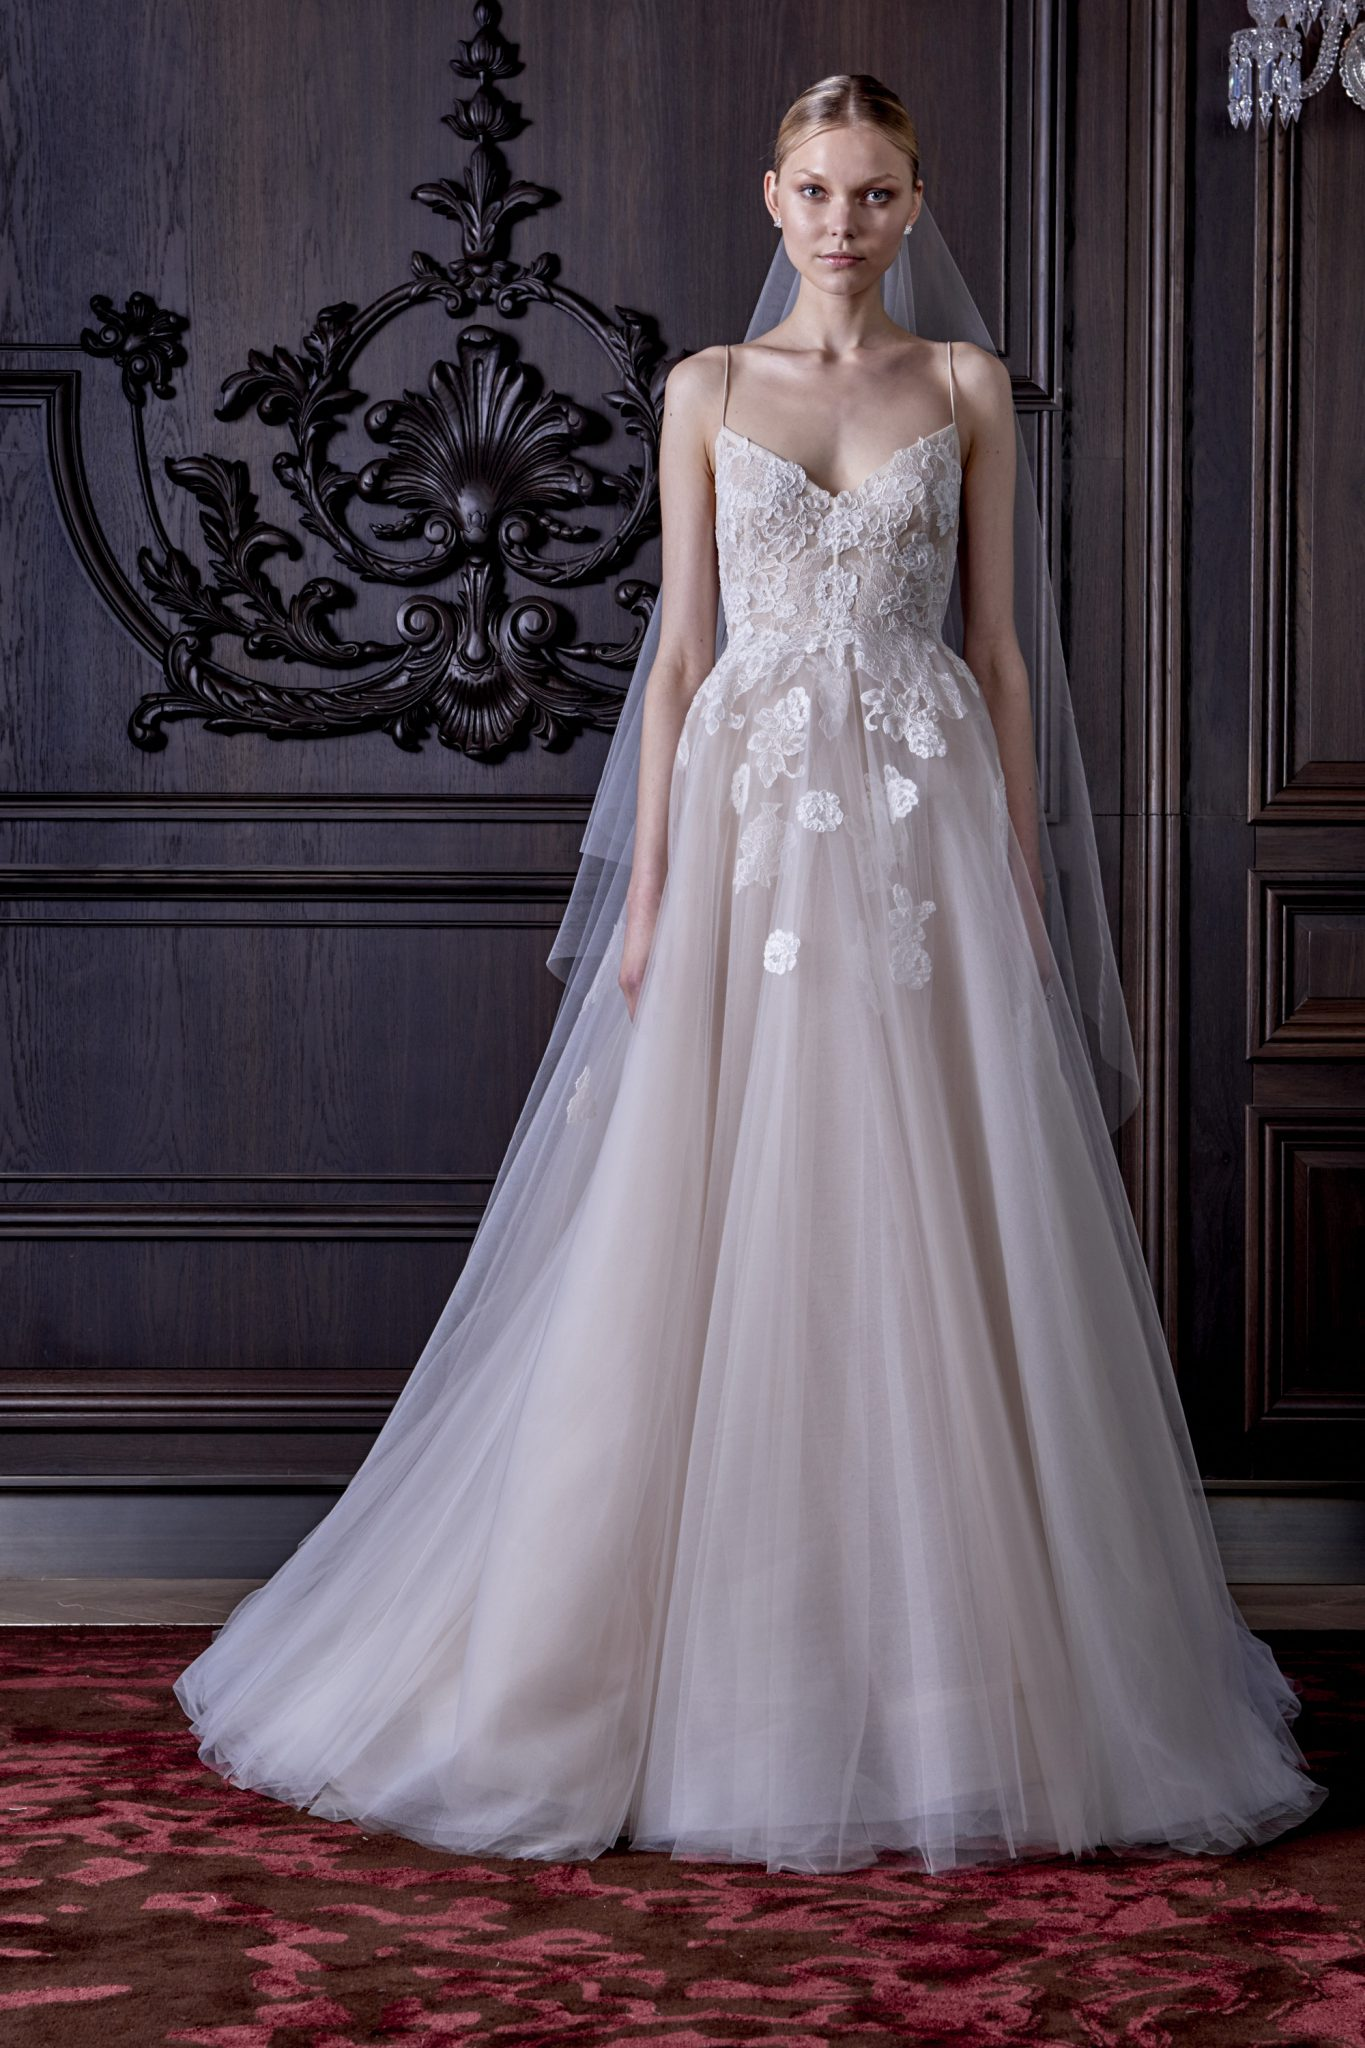 Monique Lhuillier Spring 2016 Wedding Gowns Made For Second Time Brides